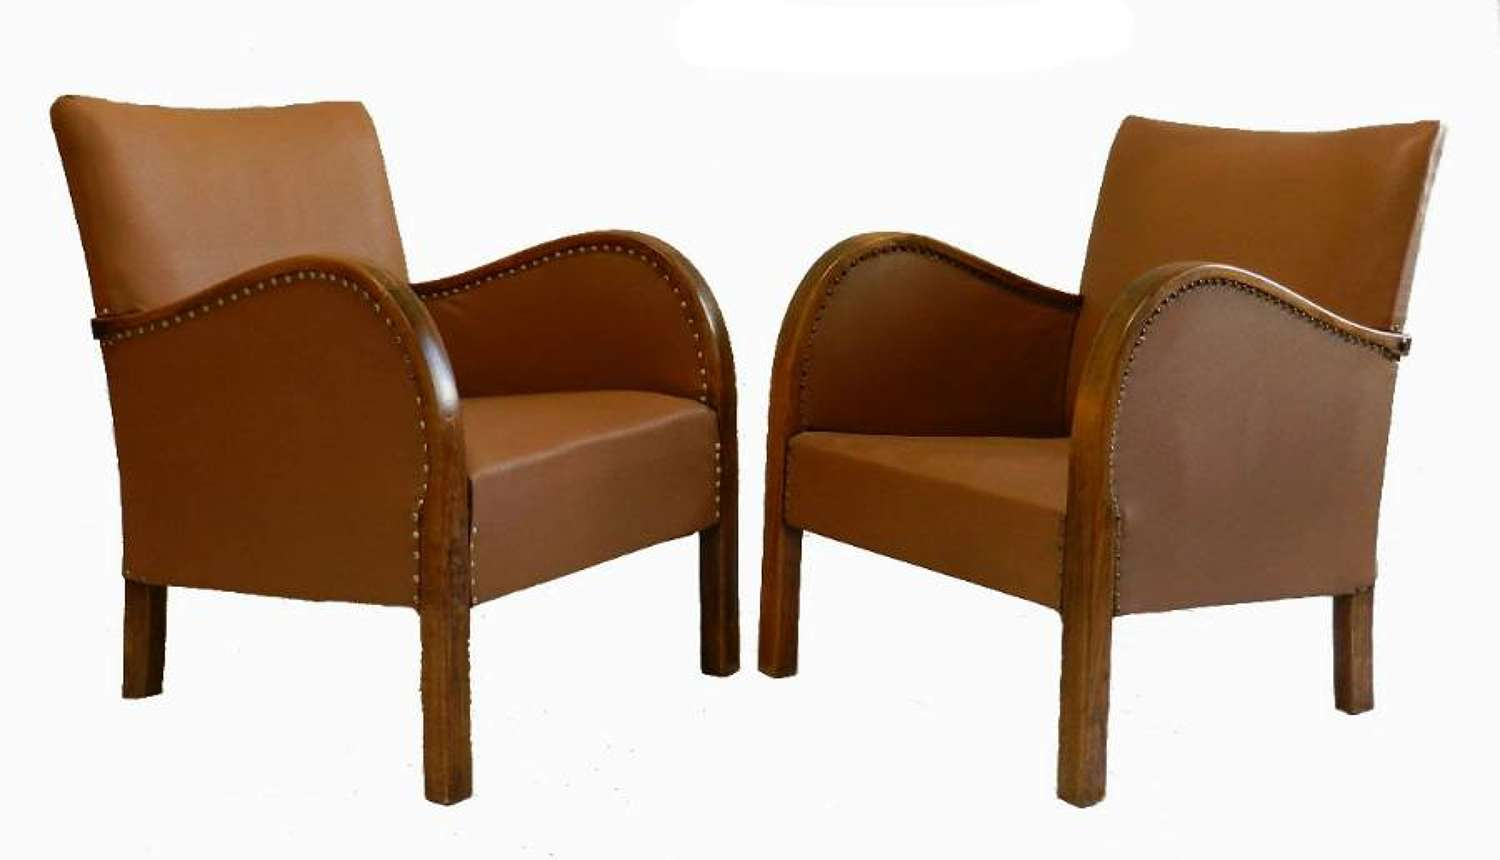 French Pair of Art Deco Armchairs to recover or use